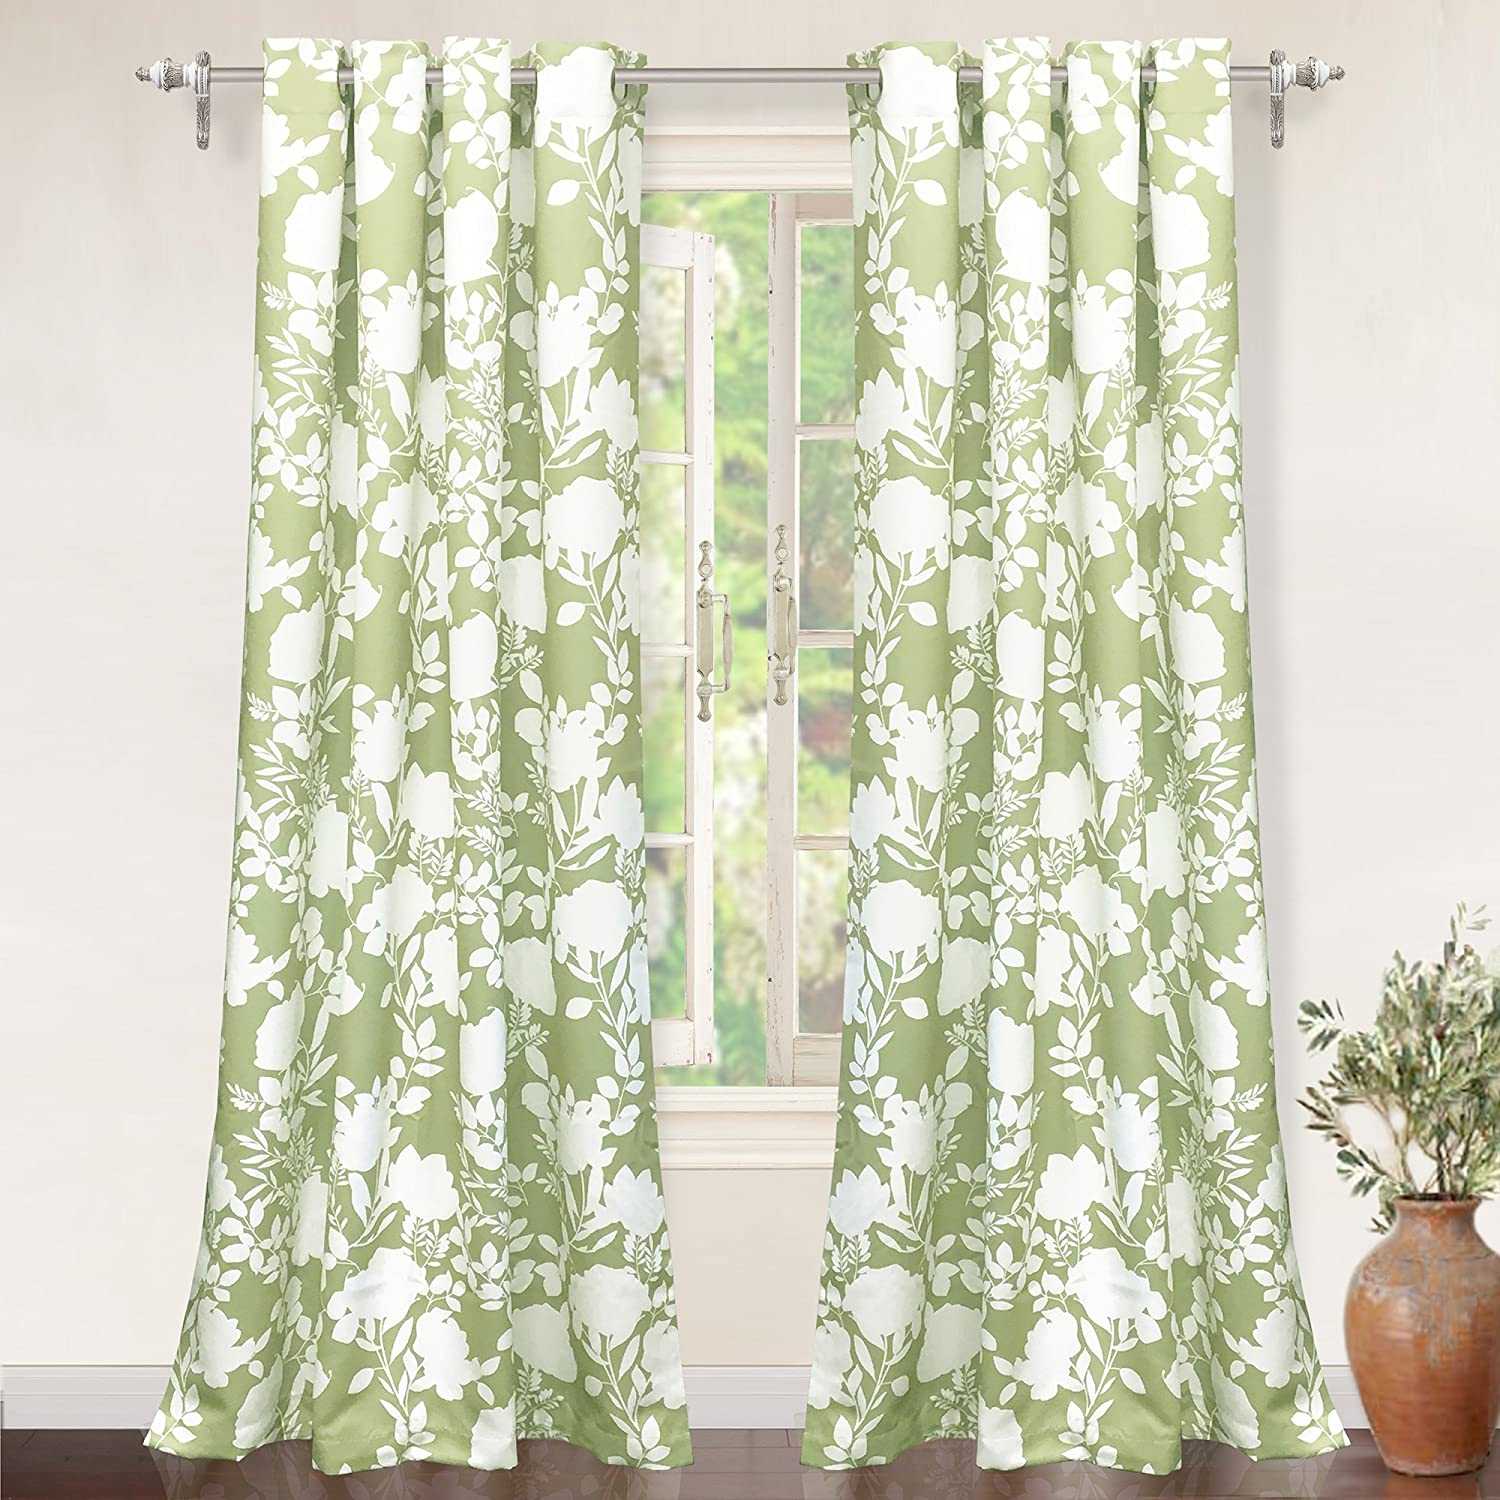 DriftAway Floral Delight Botanic Pattern Room Darkening/Thermal Insulated Grommet Unlined Window Curtains Olive Green